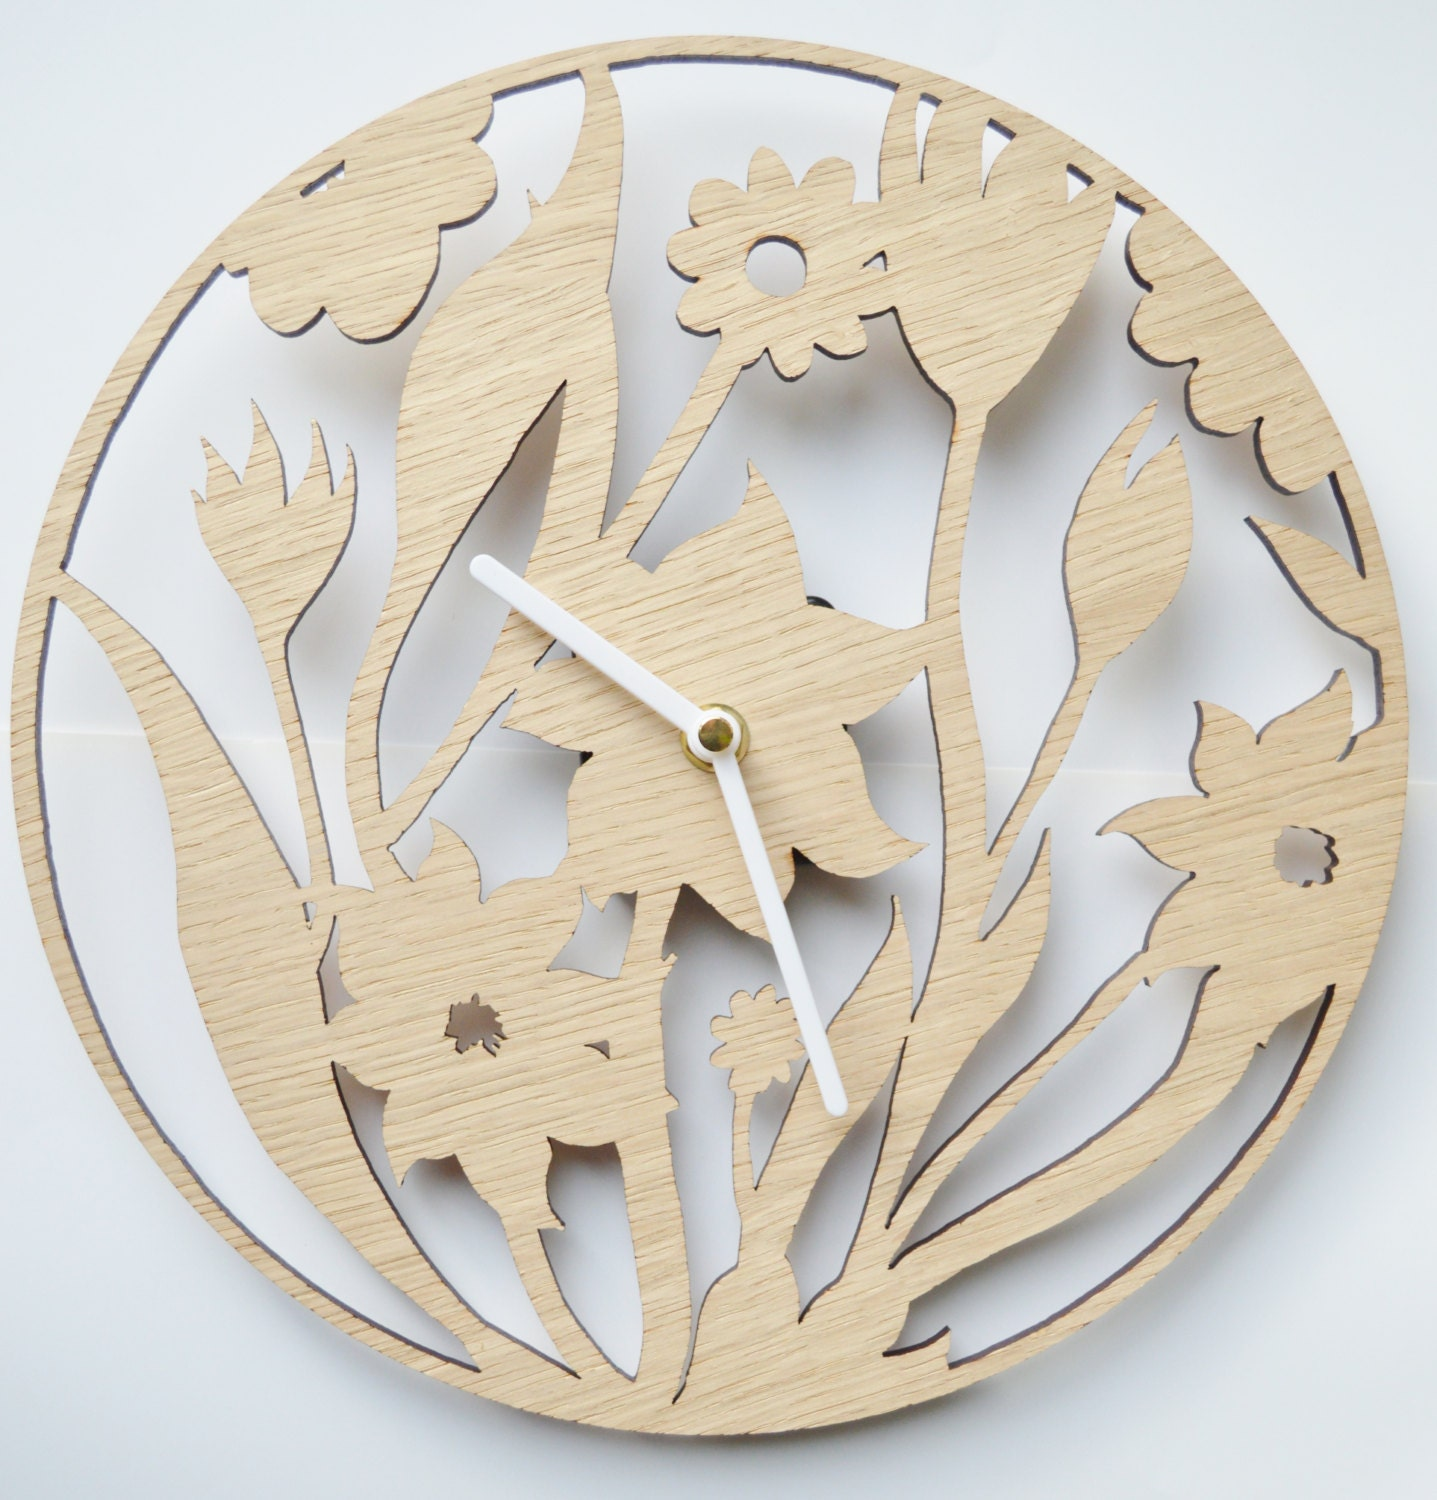 Wall Clock Designs In Wood : Floral design clock laser cut wooden